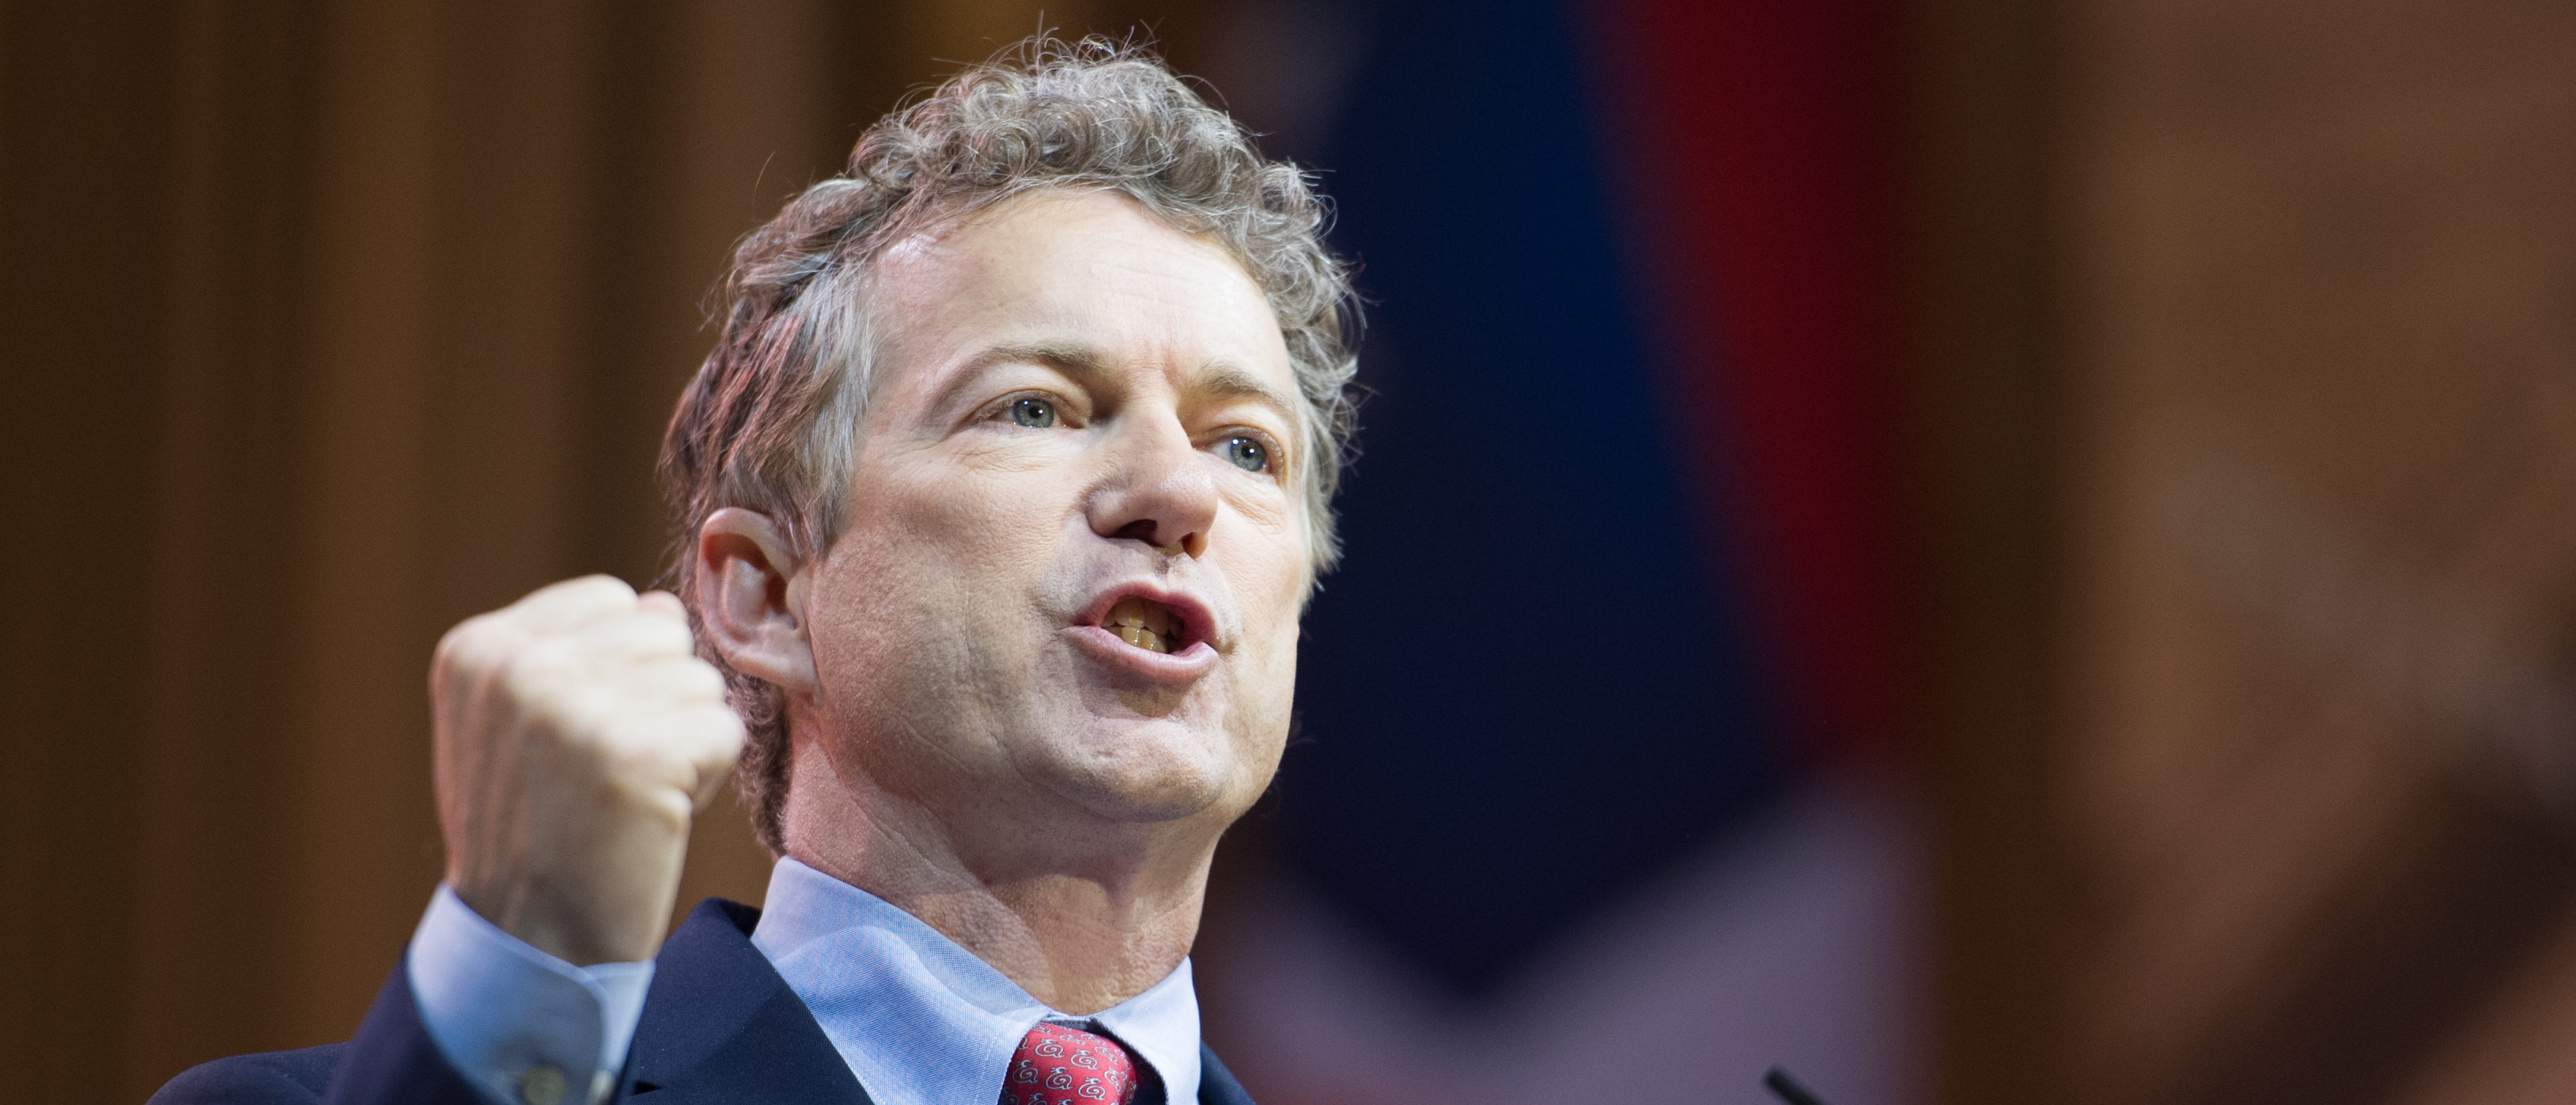 Rand Paul, Critic Of The Bush Era, Will Have An 'Open Mind' With Brett Kavanaugh